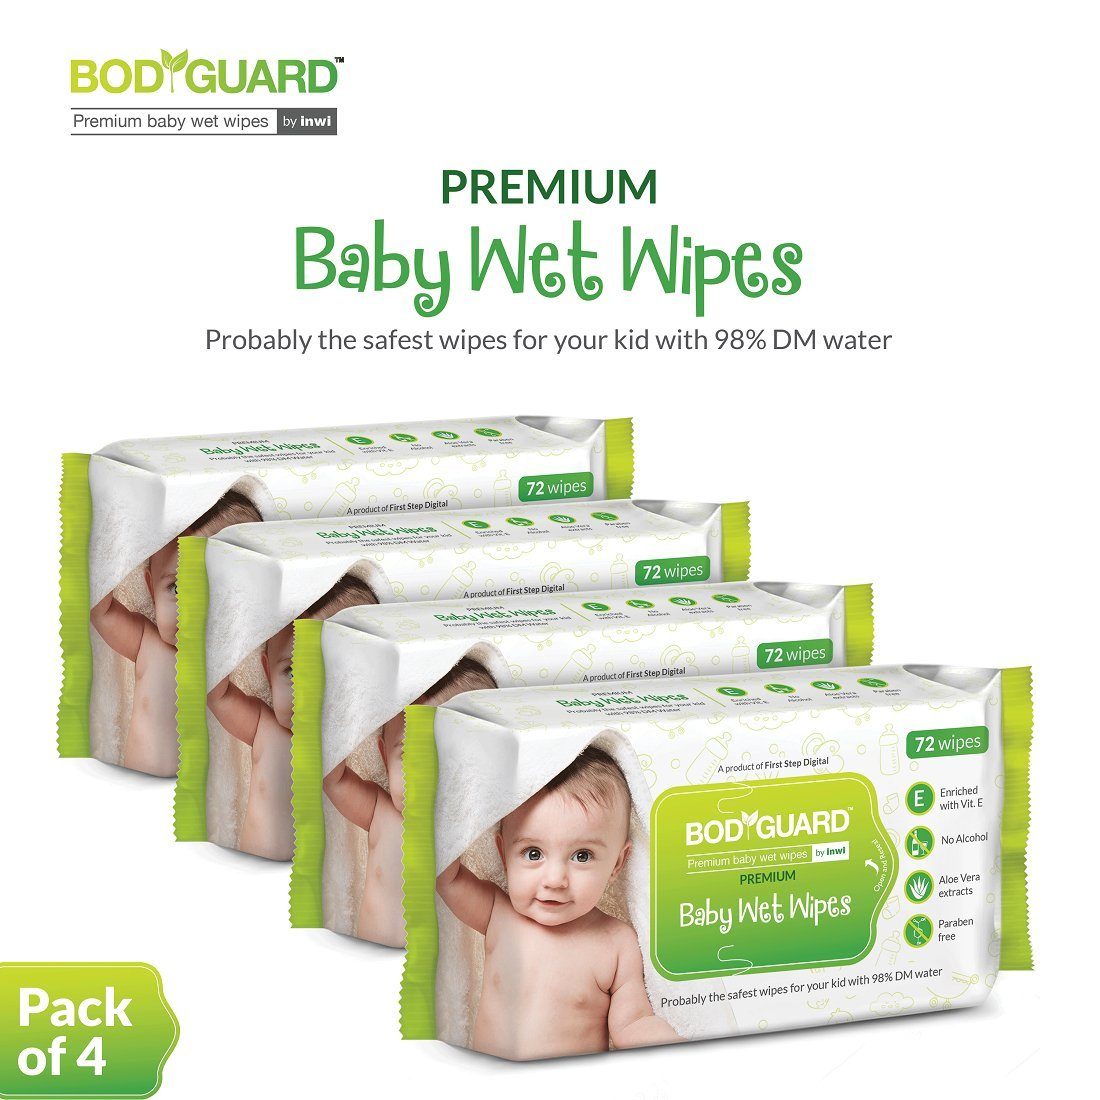 BodyGuard Premium Paraben Free Baby Wet Wipes with Aloe Vera - 288 Wipes (Pack of 4)